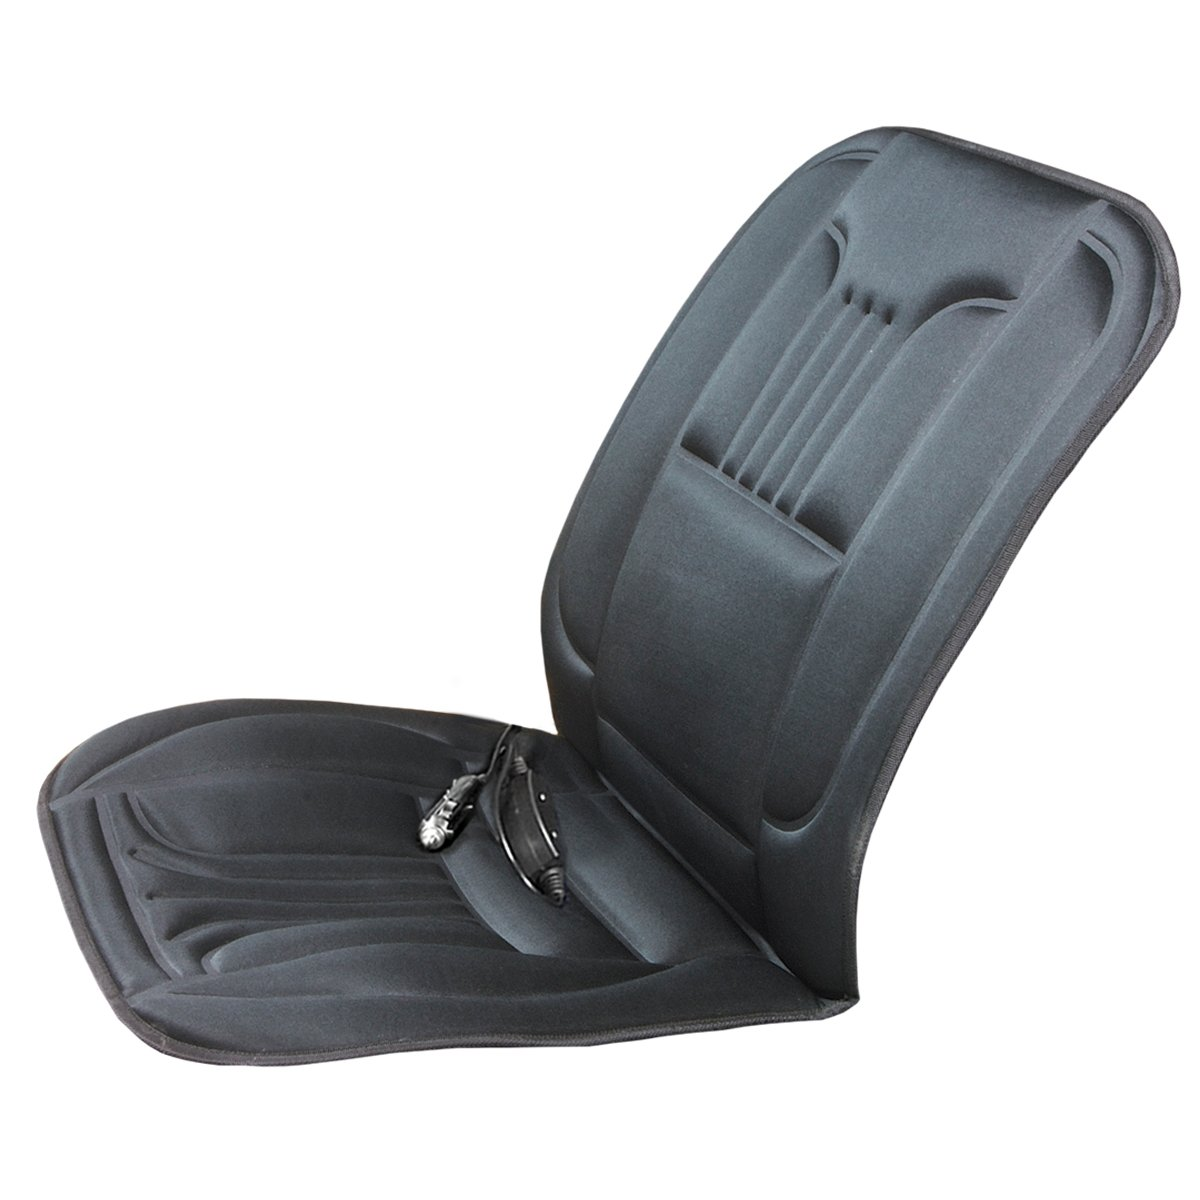 Torrex Seat Heater With 2&Nbsp; Heat Settings 12&Nbsp; V